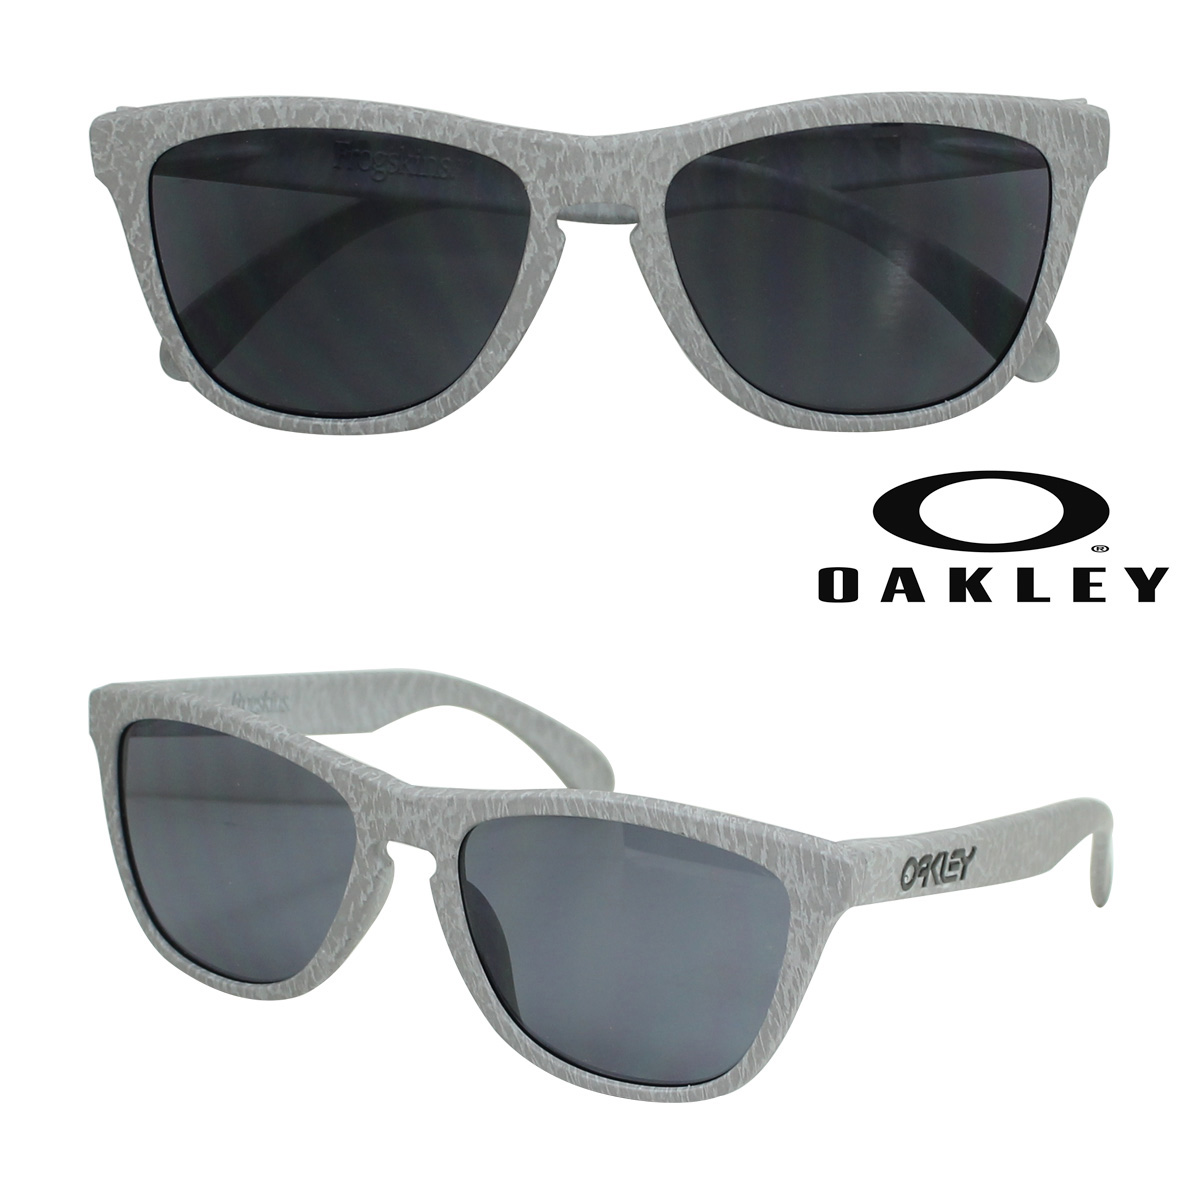 Oakley sunglasses asian fit - Oakley Oakley Sunglasses Frogskins Asian Fit Frog Skin Asian Fitting Oo9245 30 Smoke Grey Men S